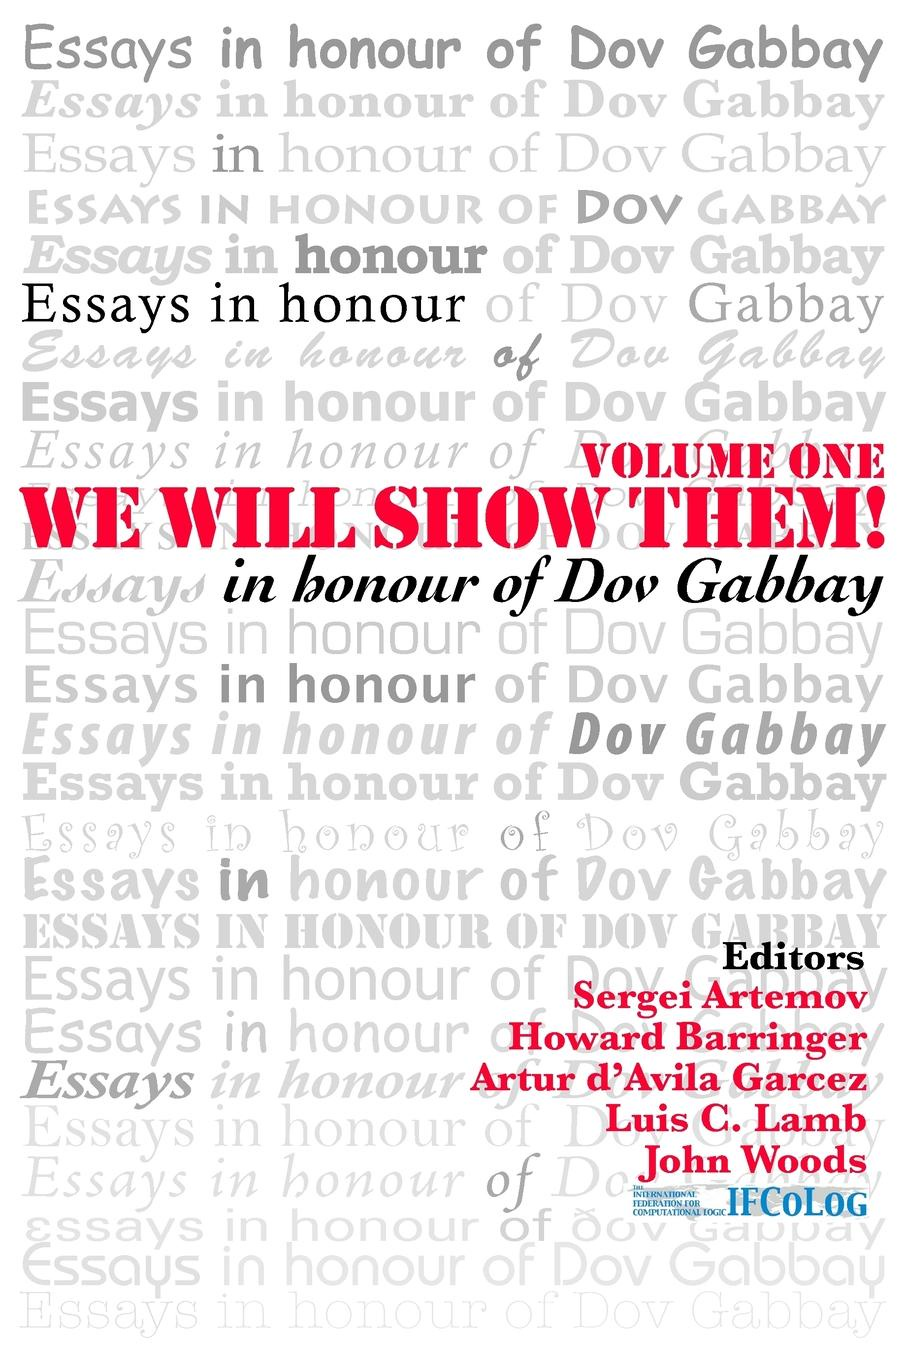 We Will Show Them. Essays in Honour of Dov Gabbay. Volume 1 logic london